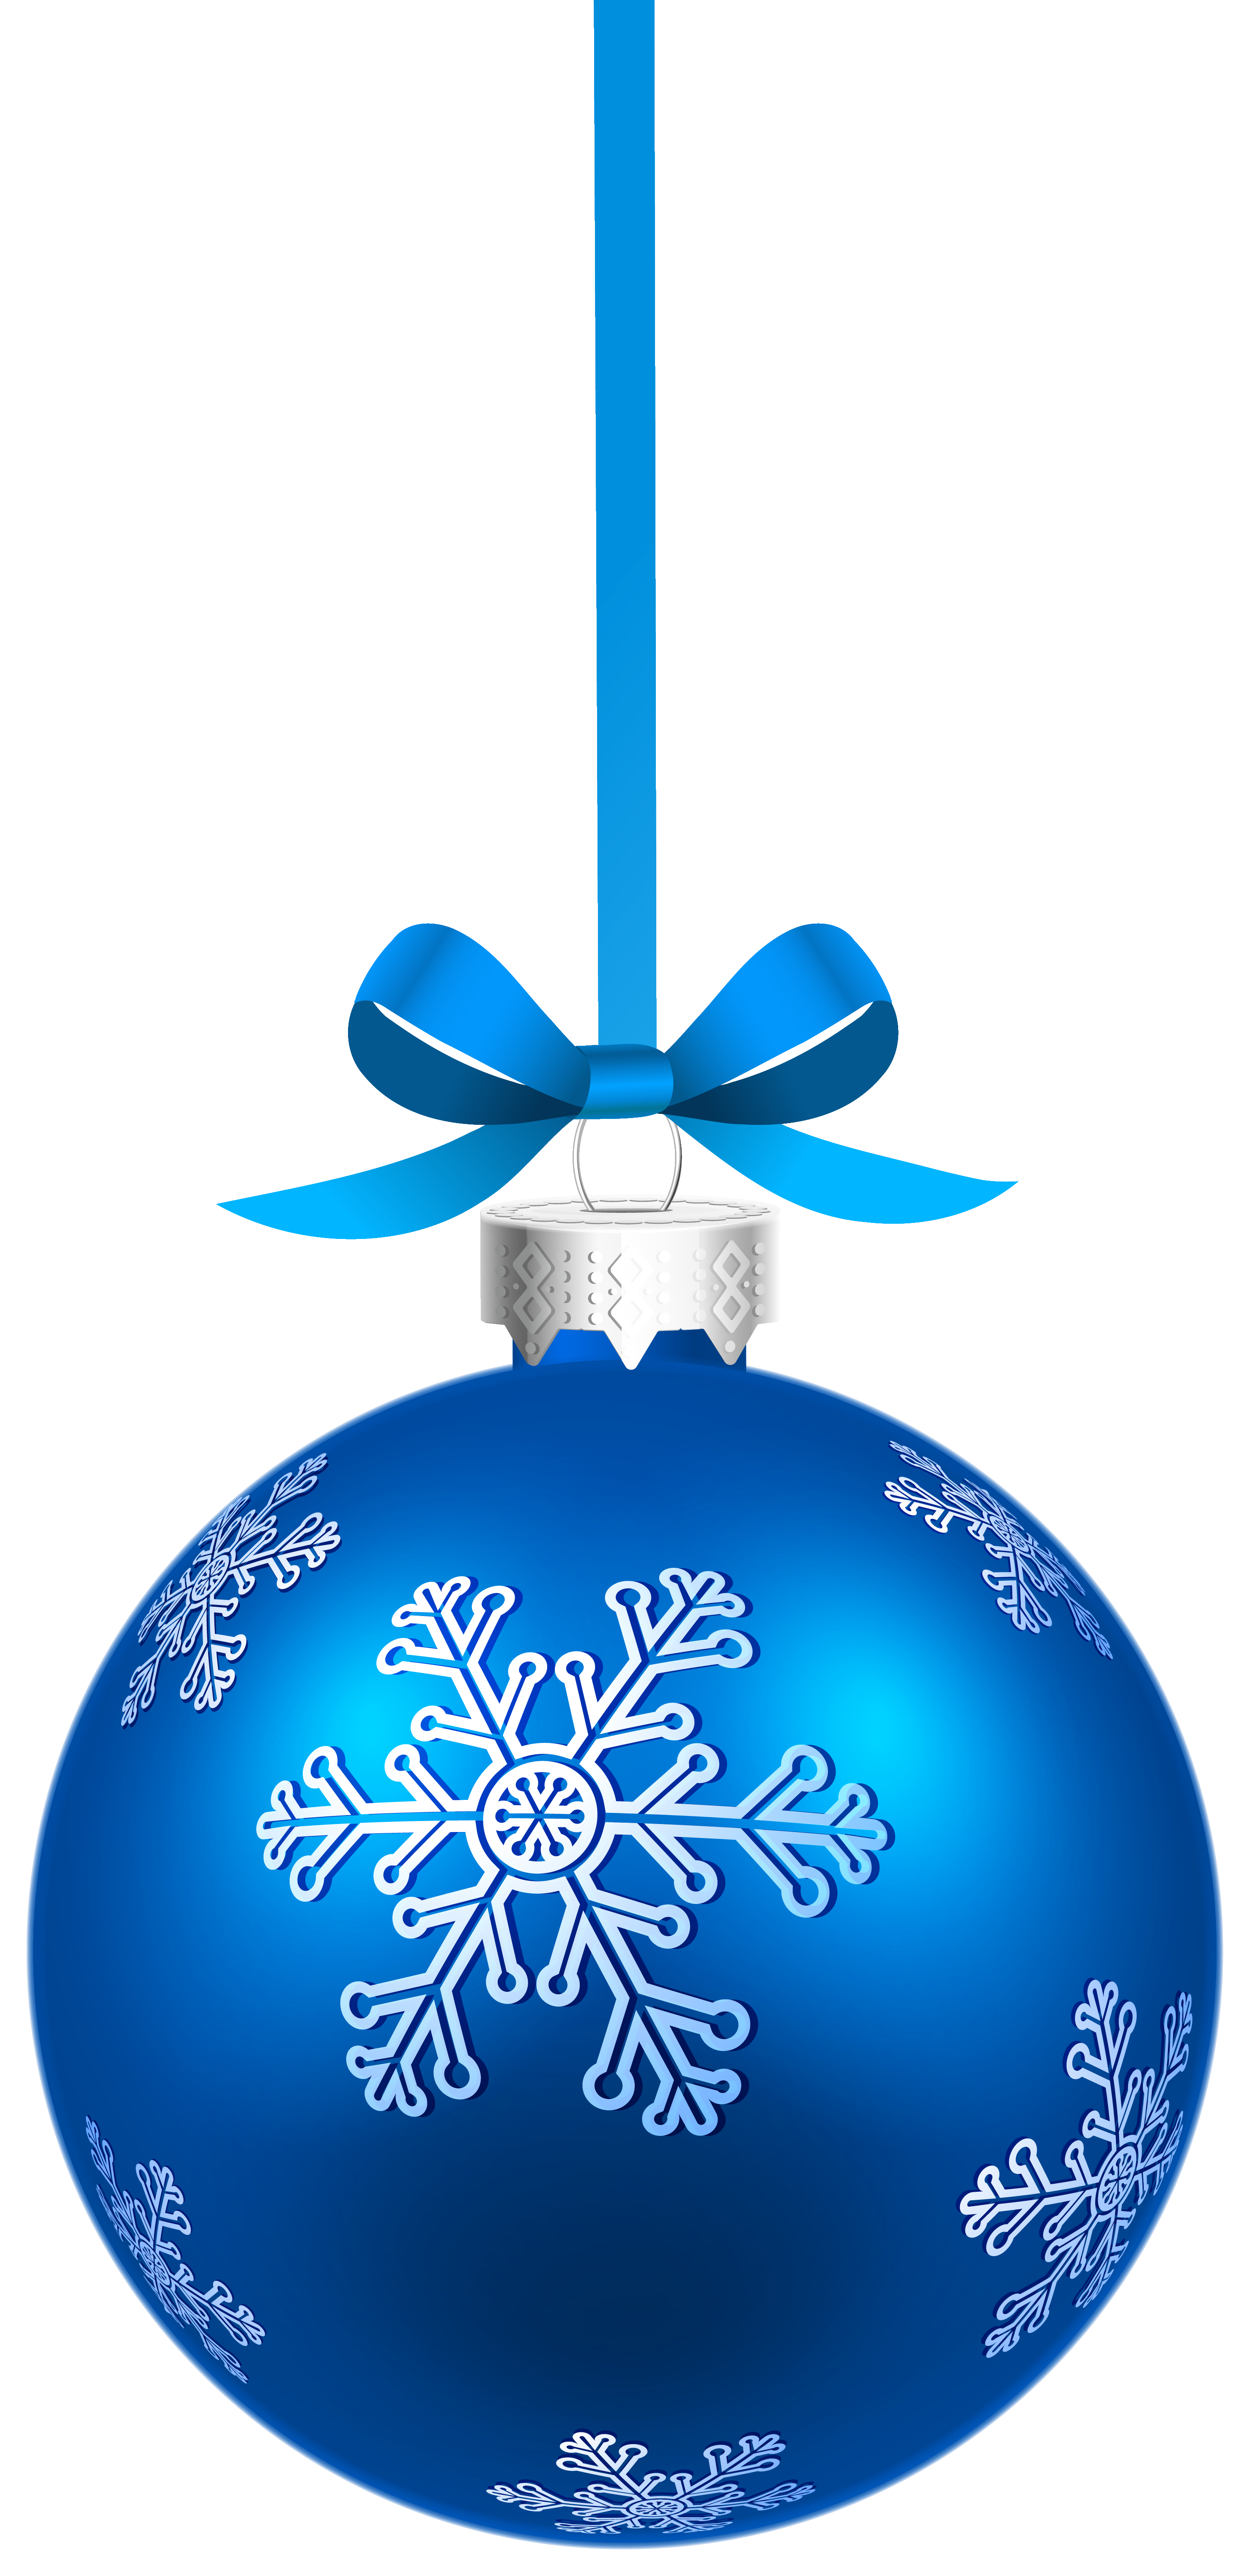 Blue snowflakes png. Christmas hanging ball with